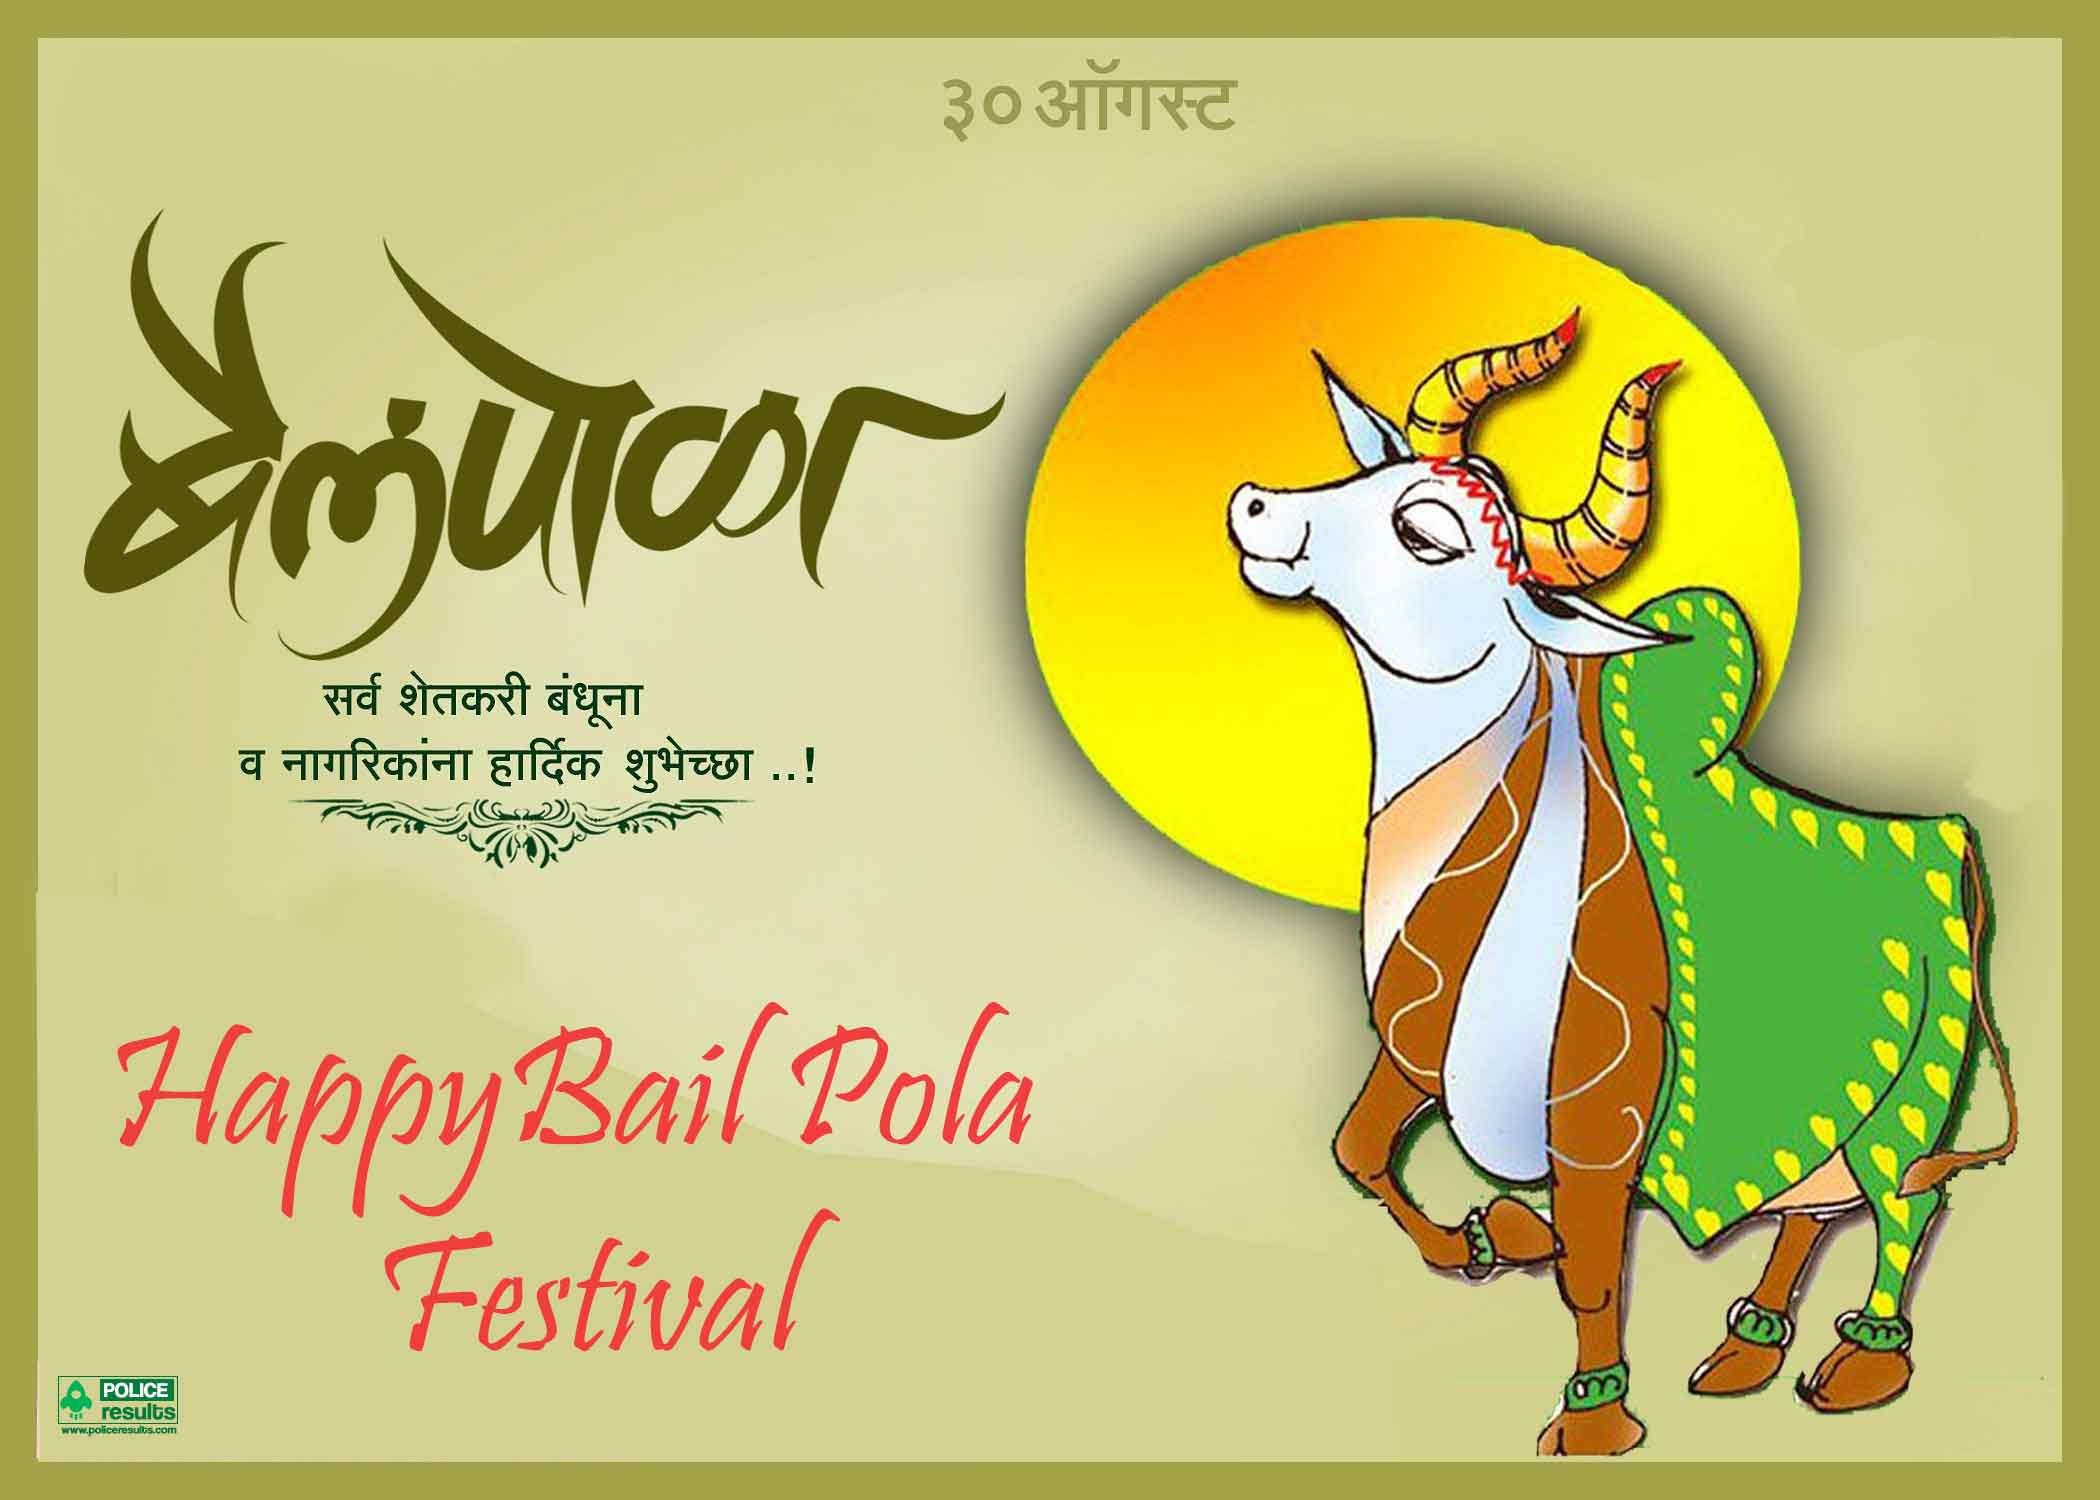 Happy Bail Pola 2020: Quotes, HD Images, Wishes, Photos, Banner in Marathi Free Download